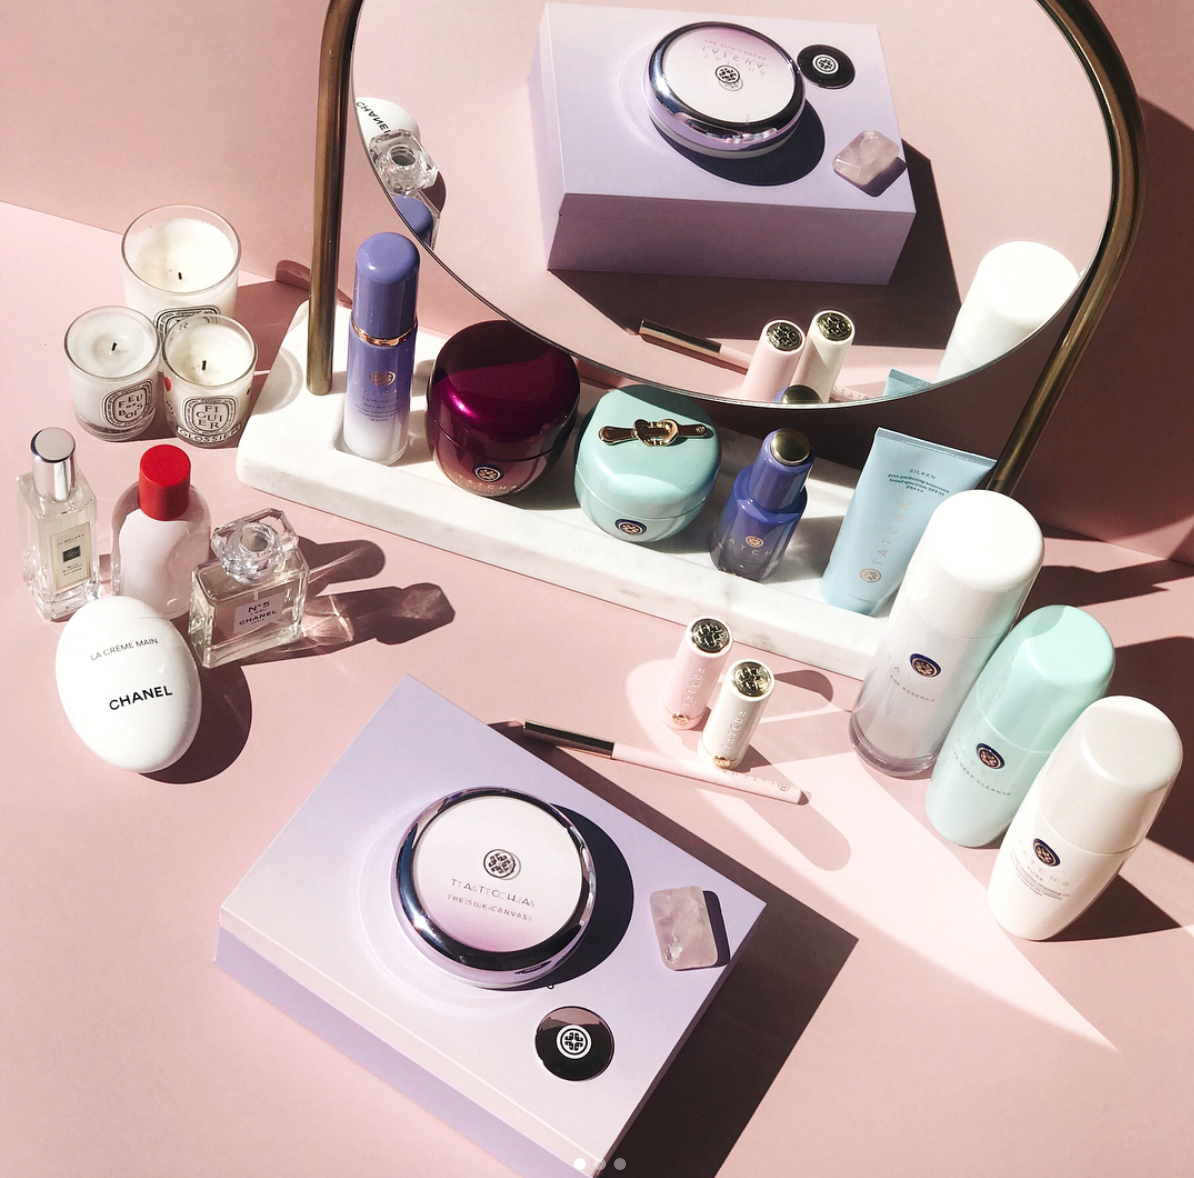 EPIC beauty collection goals via @sortofobsessed!